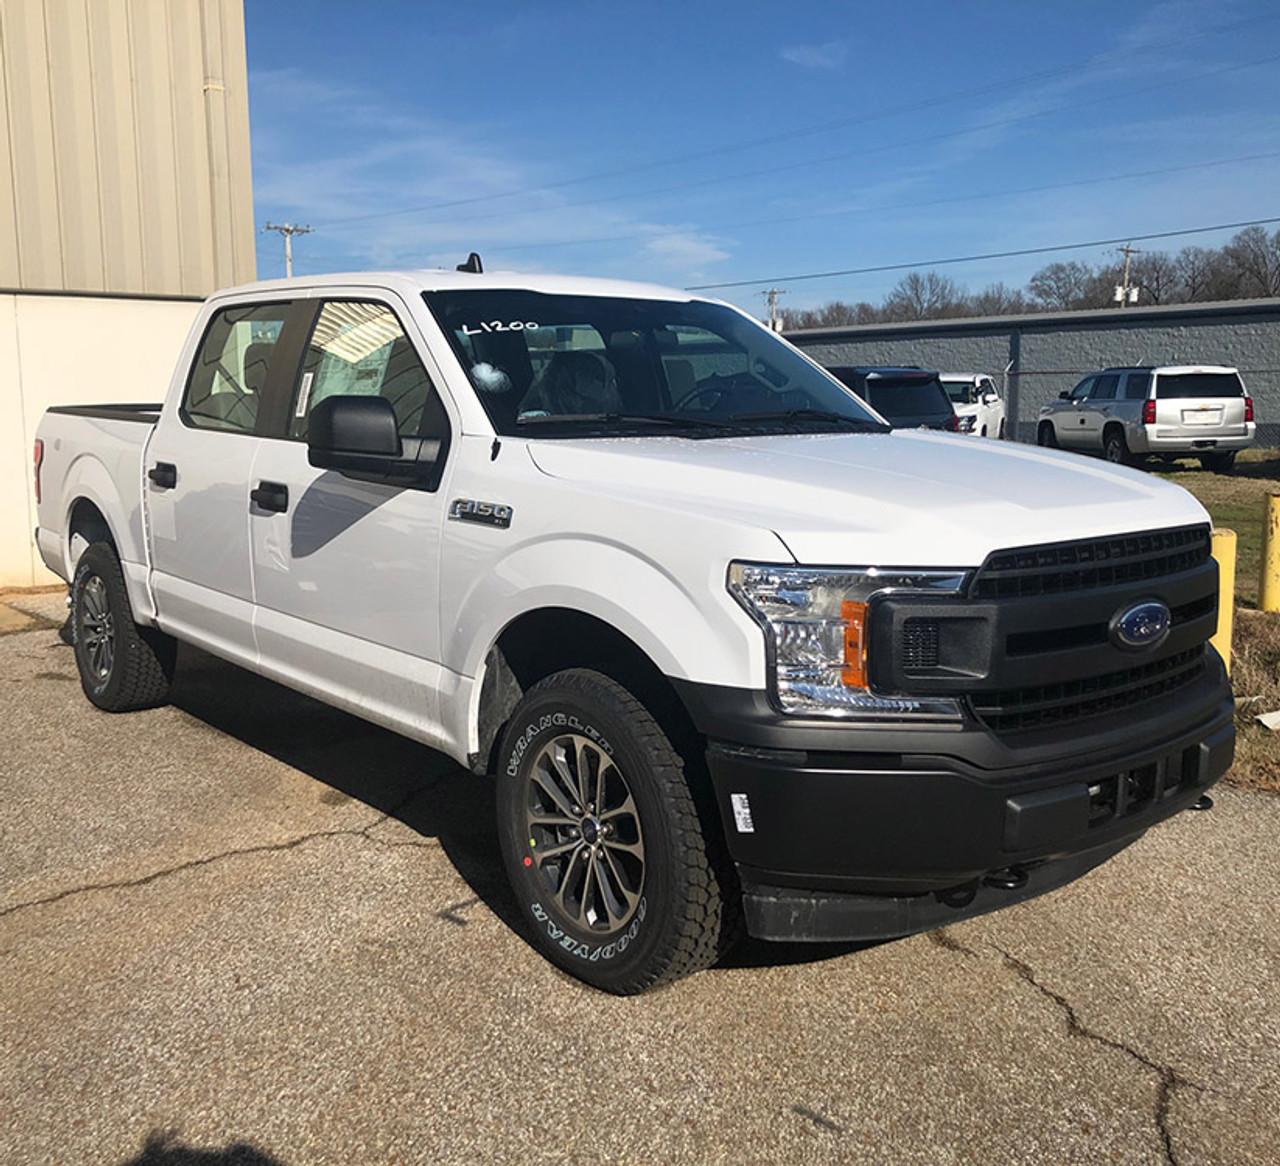 New 2020 White Ford F-150 Responder Police Package 4x4 PPV Ecoboost ready to be built as an Admin Package, choose any color LED Lights, + Delivery